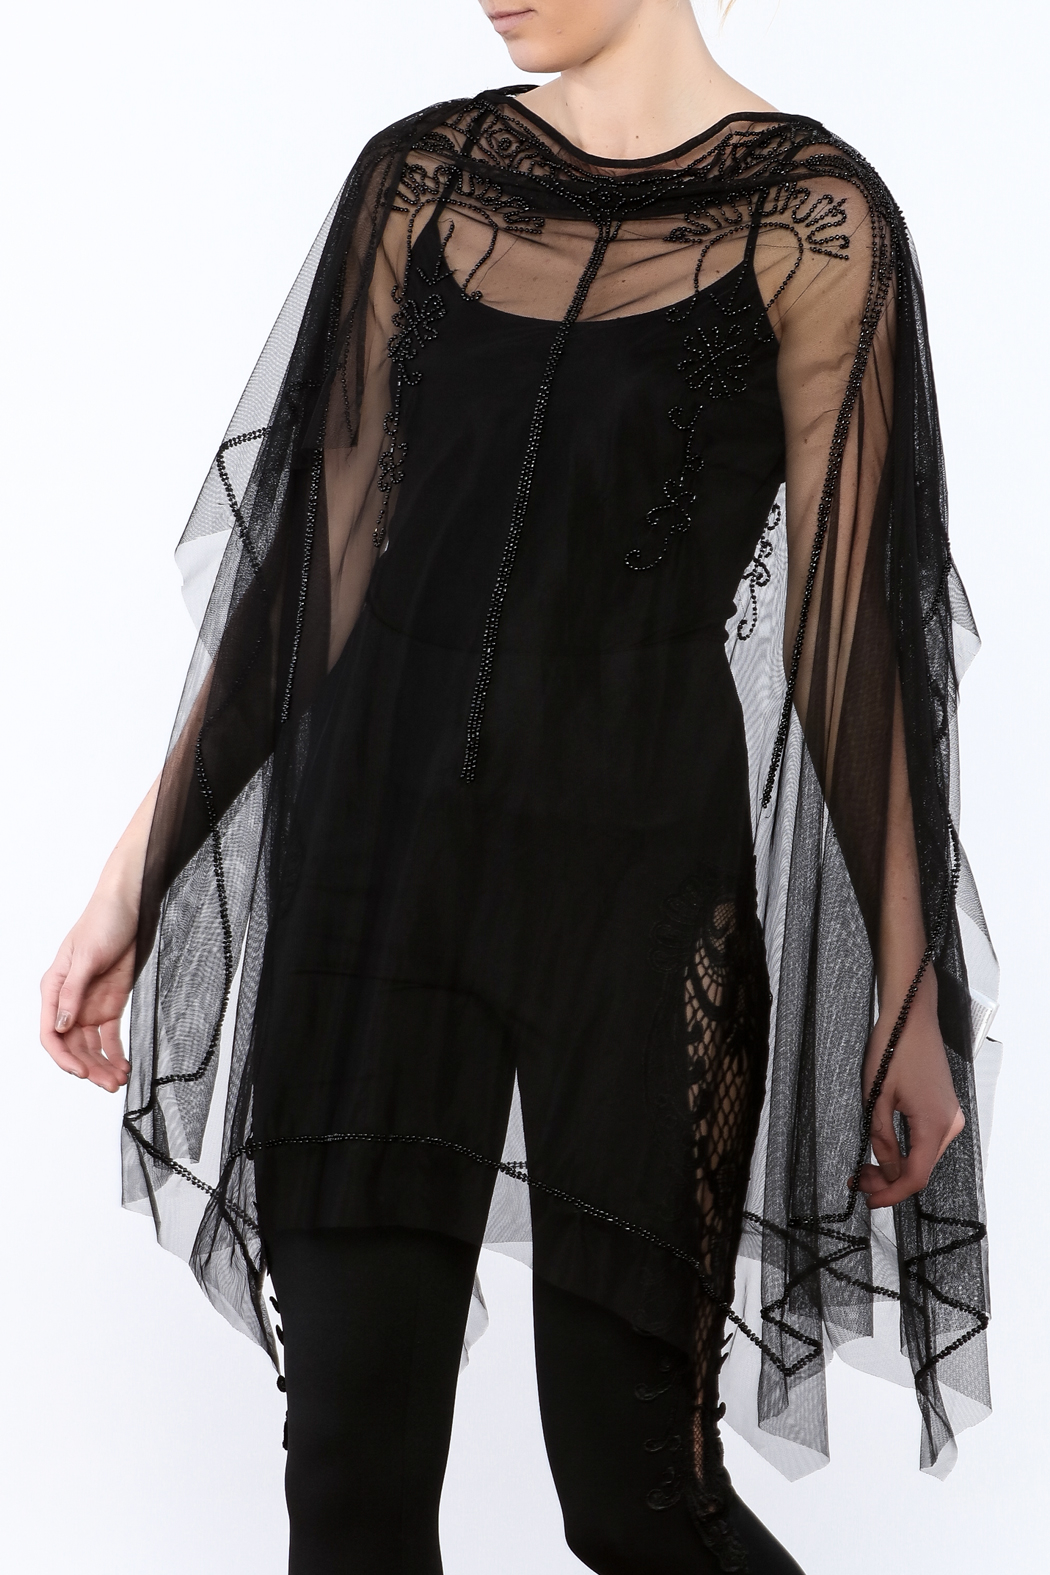 NU Denmark Black Beaded Poncho Top - Main Image